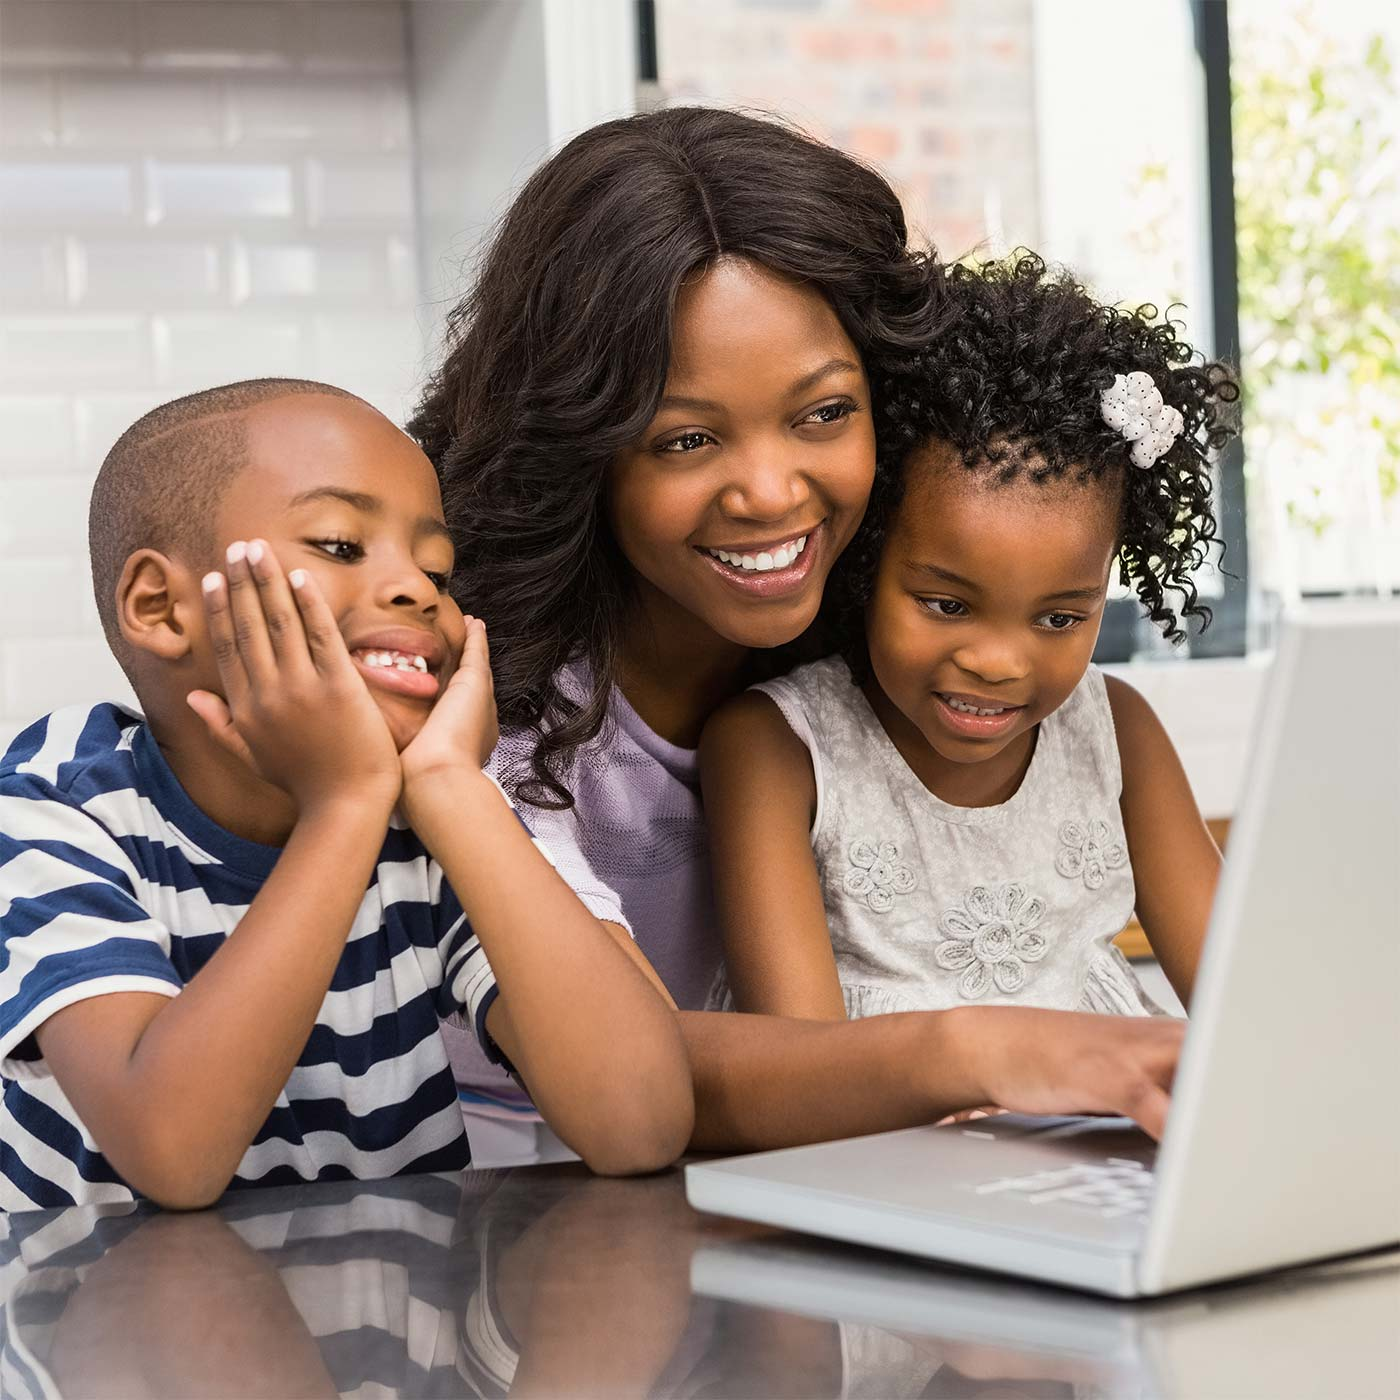 Ecommerce Business Ideas for Work at Home Moms